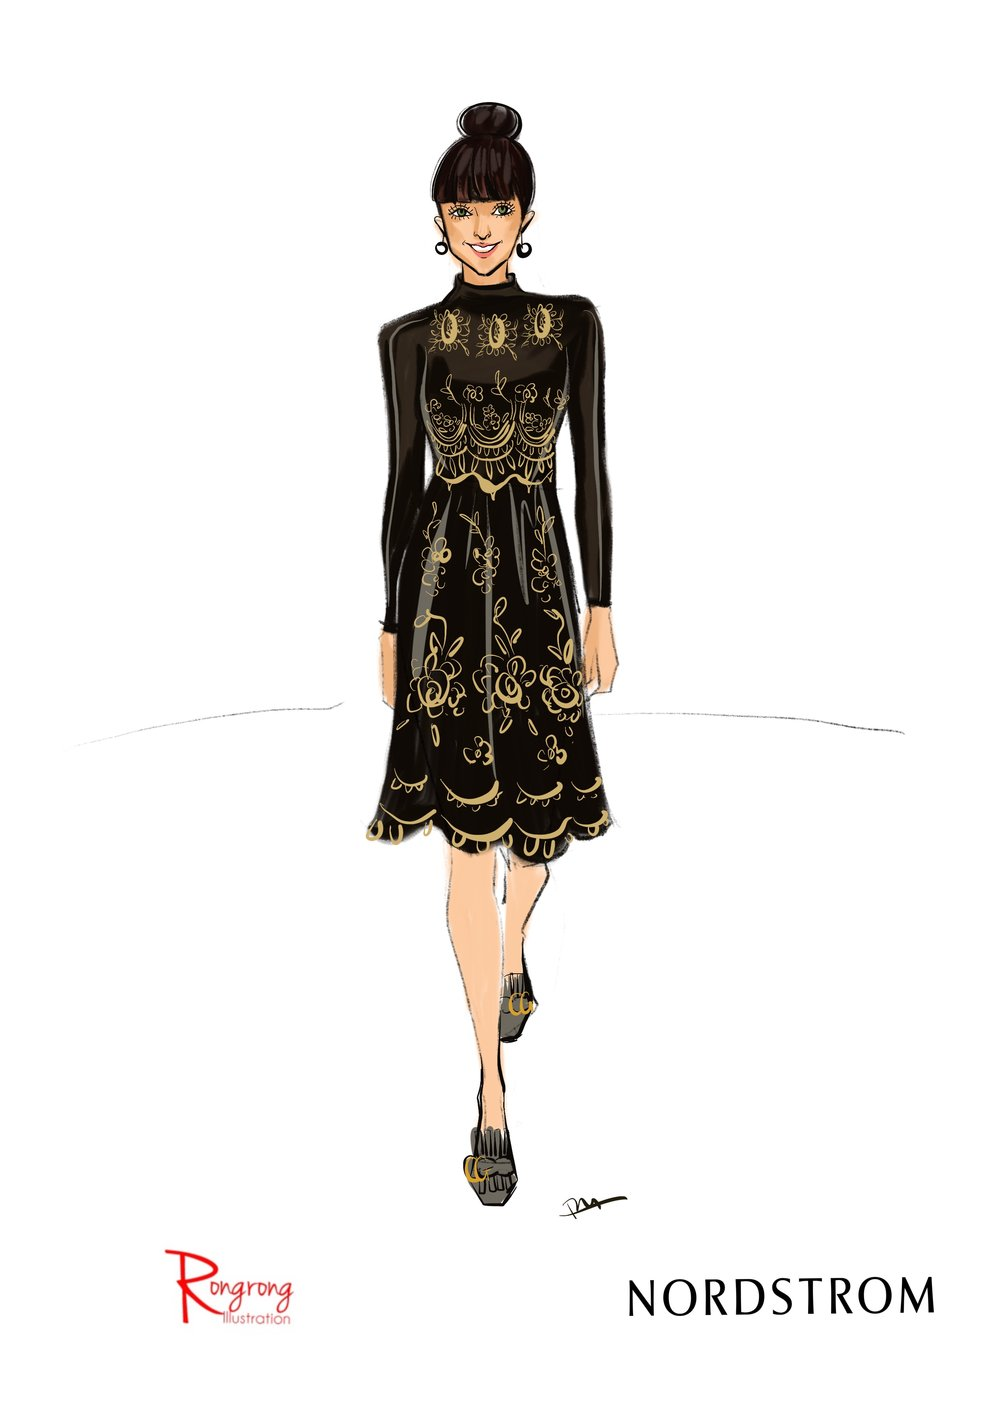 Rongrong DeVoe live sketching at Nordstrom Dallas fashion event.jpg